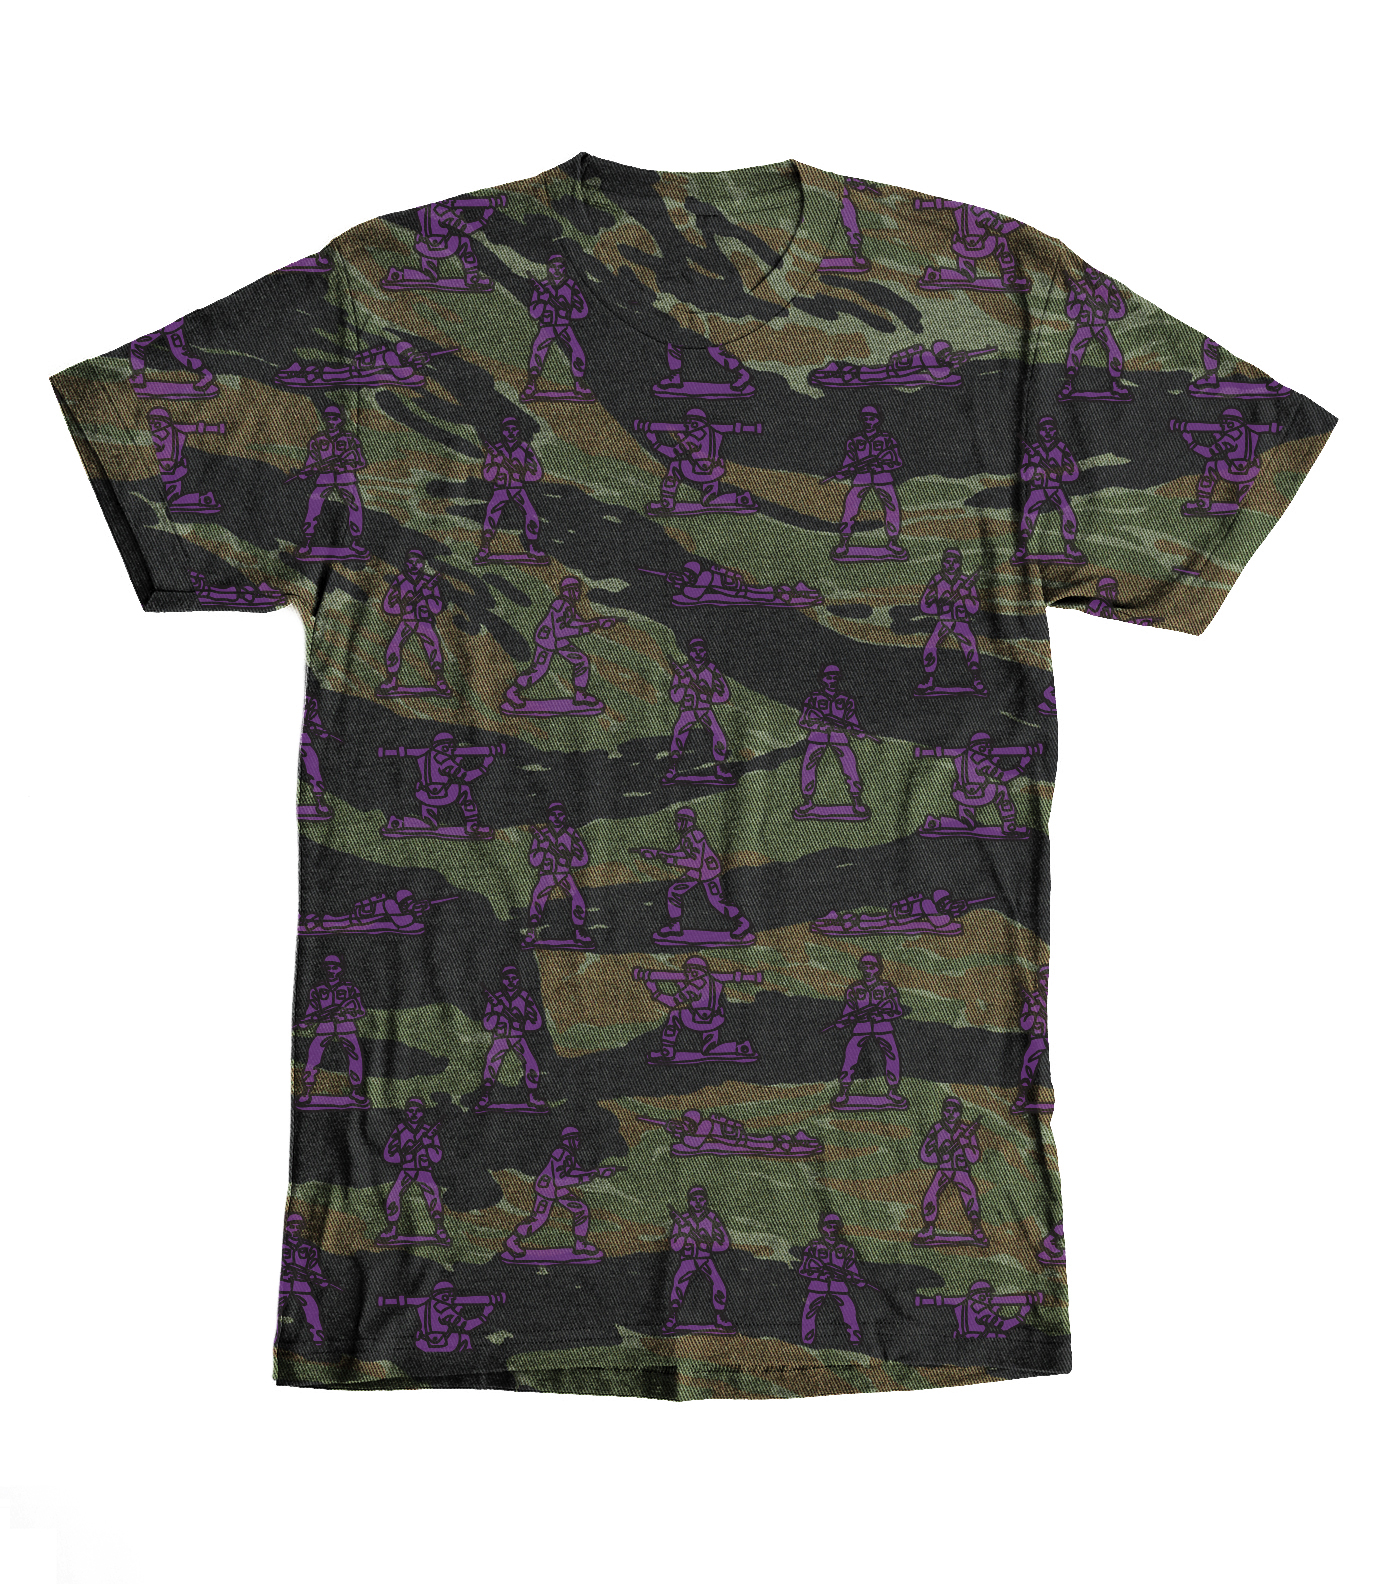 Toy-Soldier-Tee-Shirt-Green.jpg